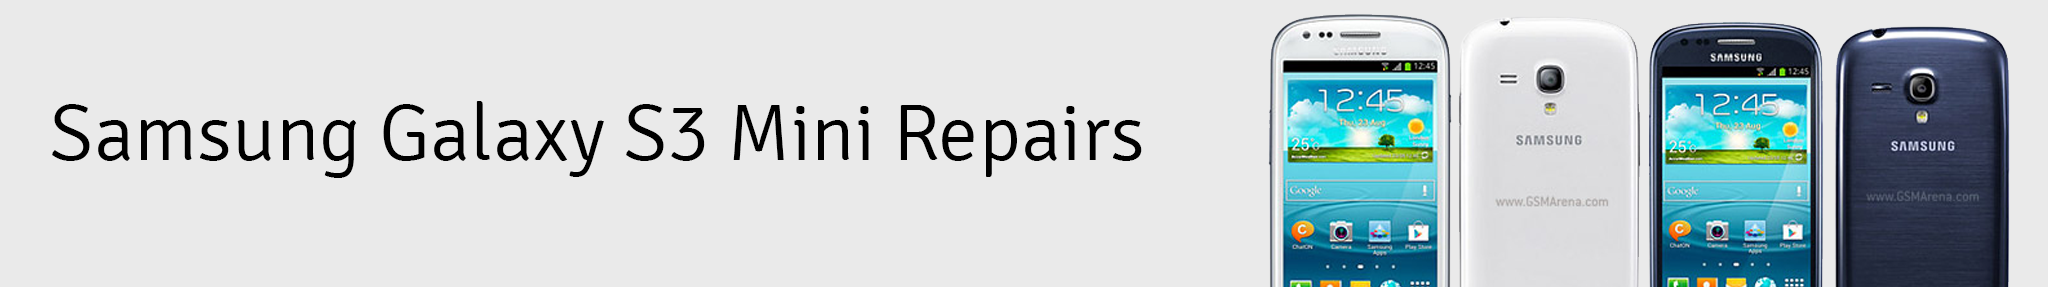 amsung Galaxy S3 Mini Repair